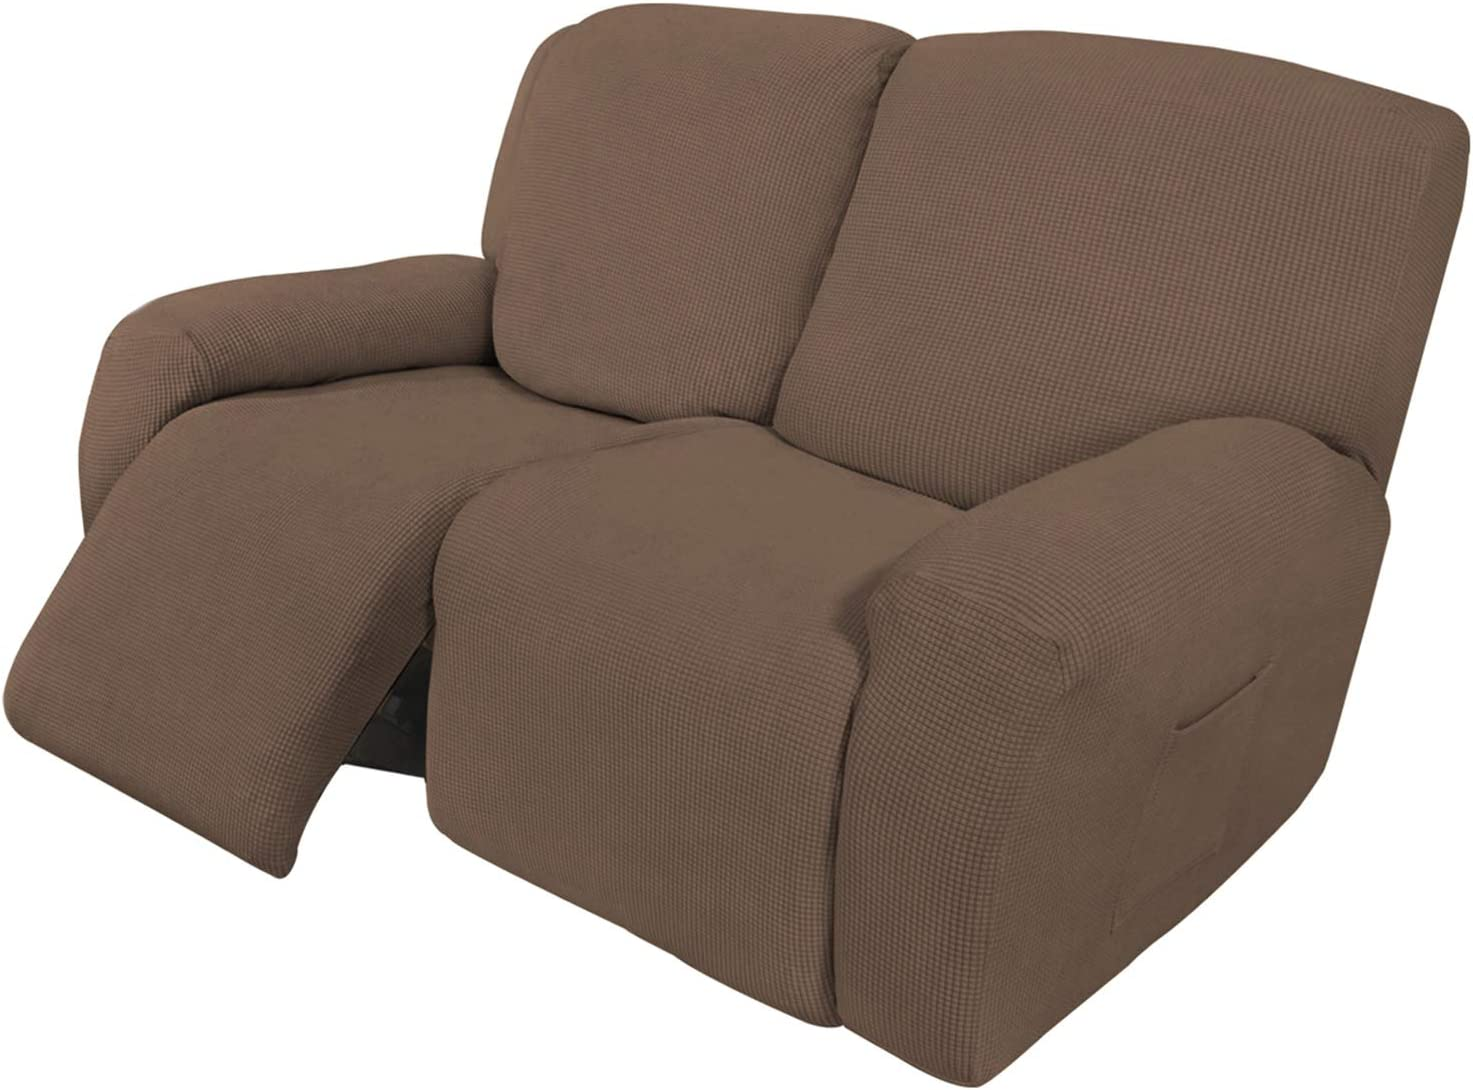 711fc 1tAQL. AC SL1500 - Best Slipcovers For Leather Sofas and Couches (Non-Slip) - ChairPicks